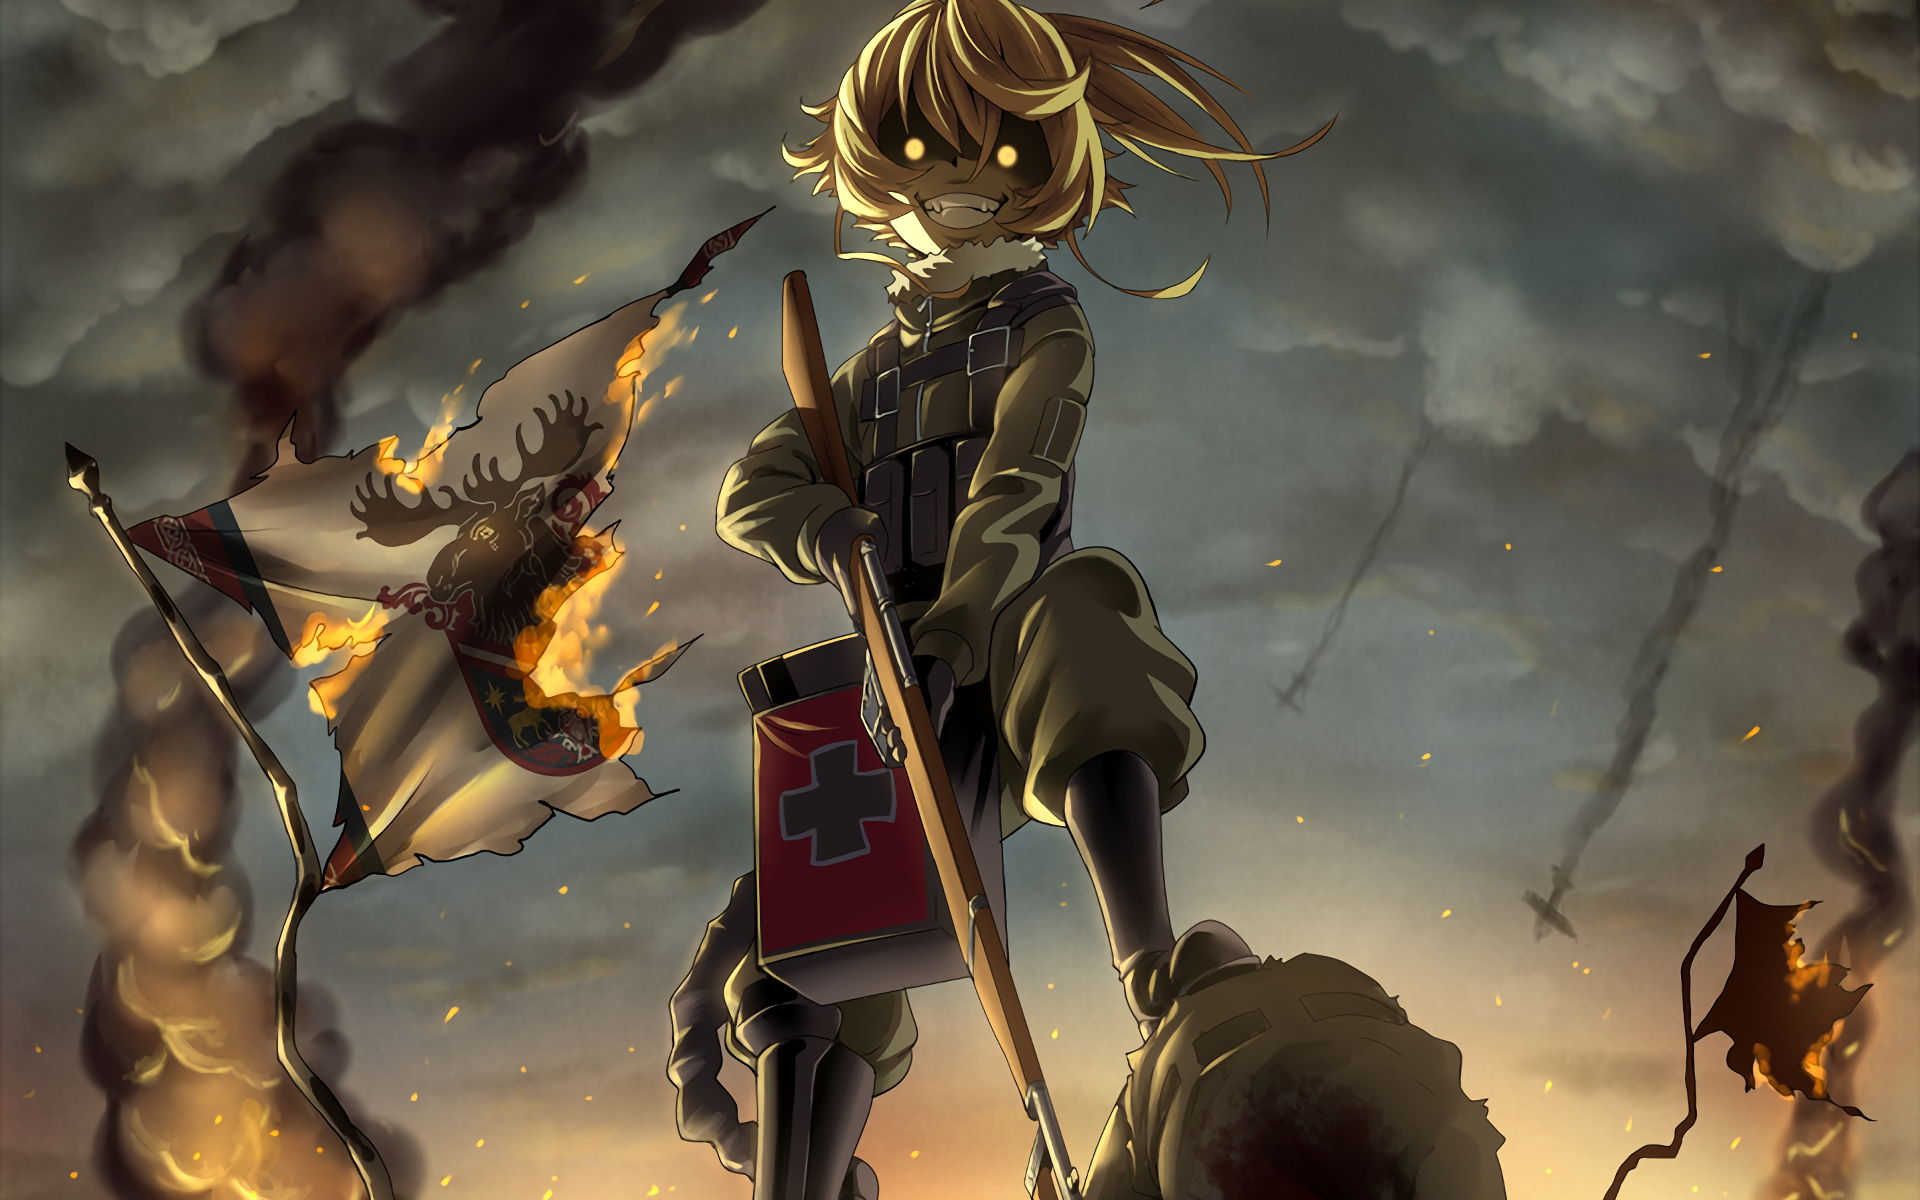 265 Youjo Senki Hd Wallpapers Background Images Wallpaper Abyss